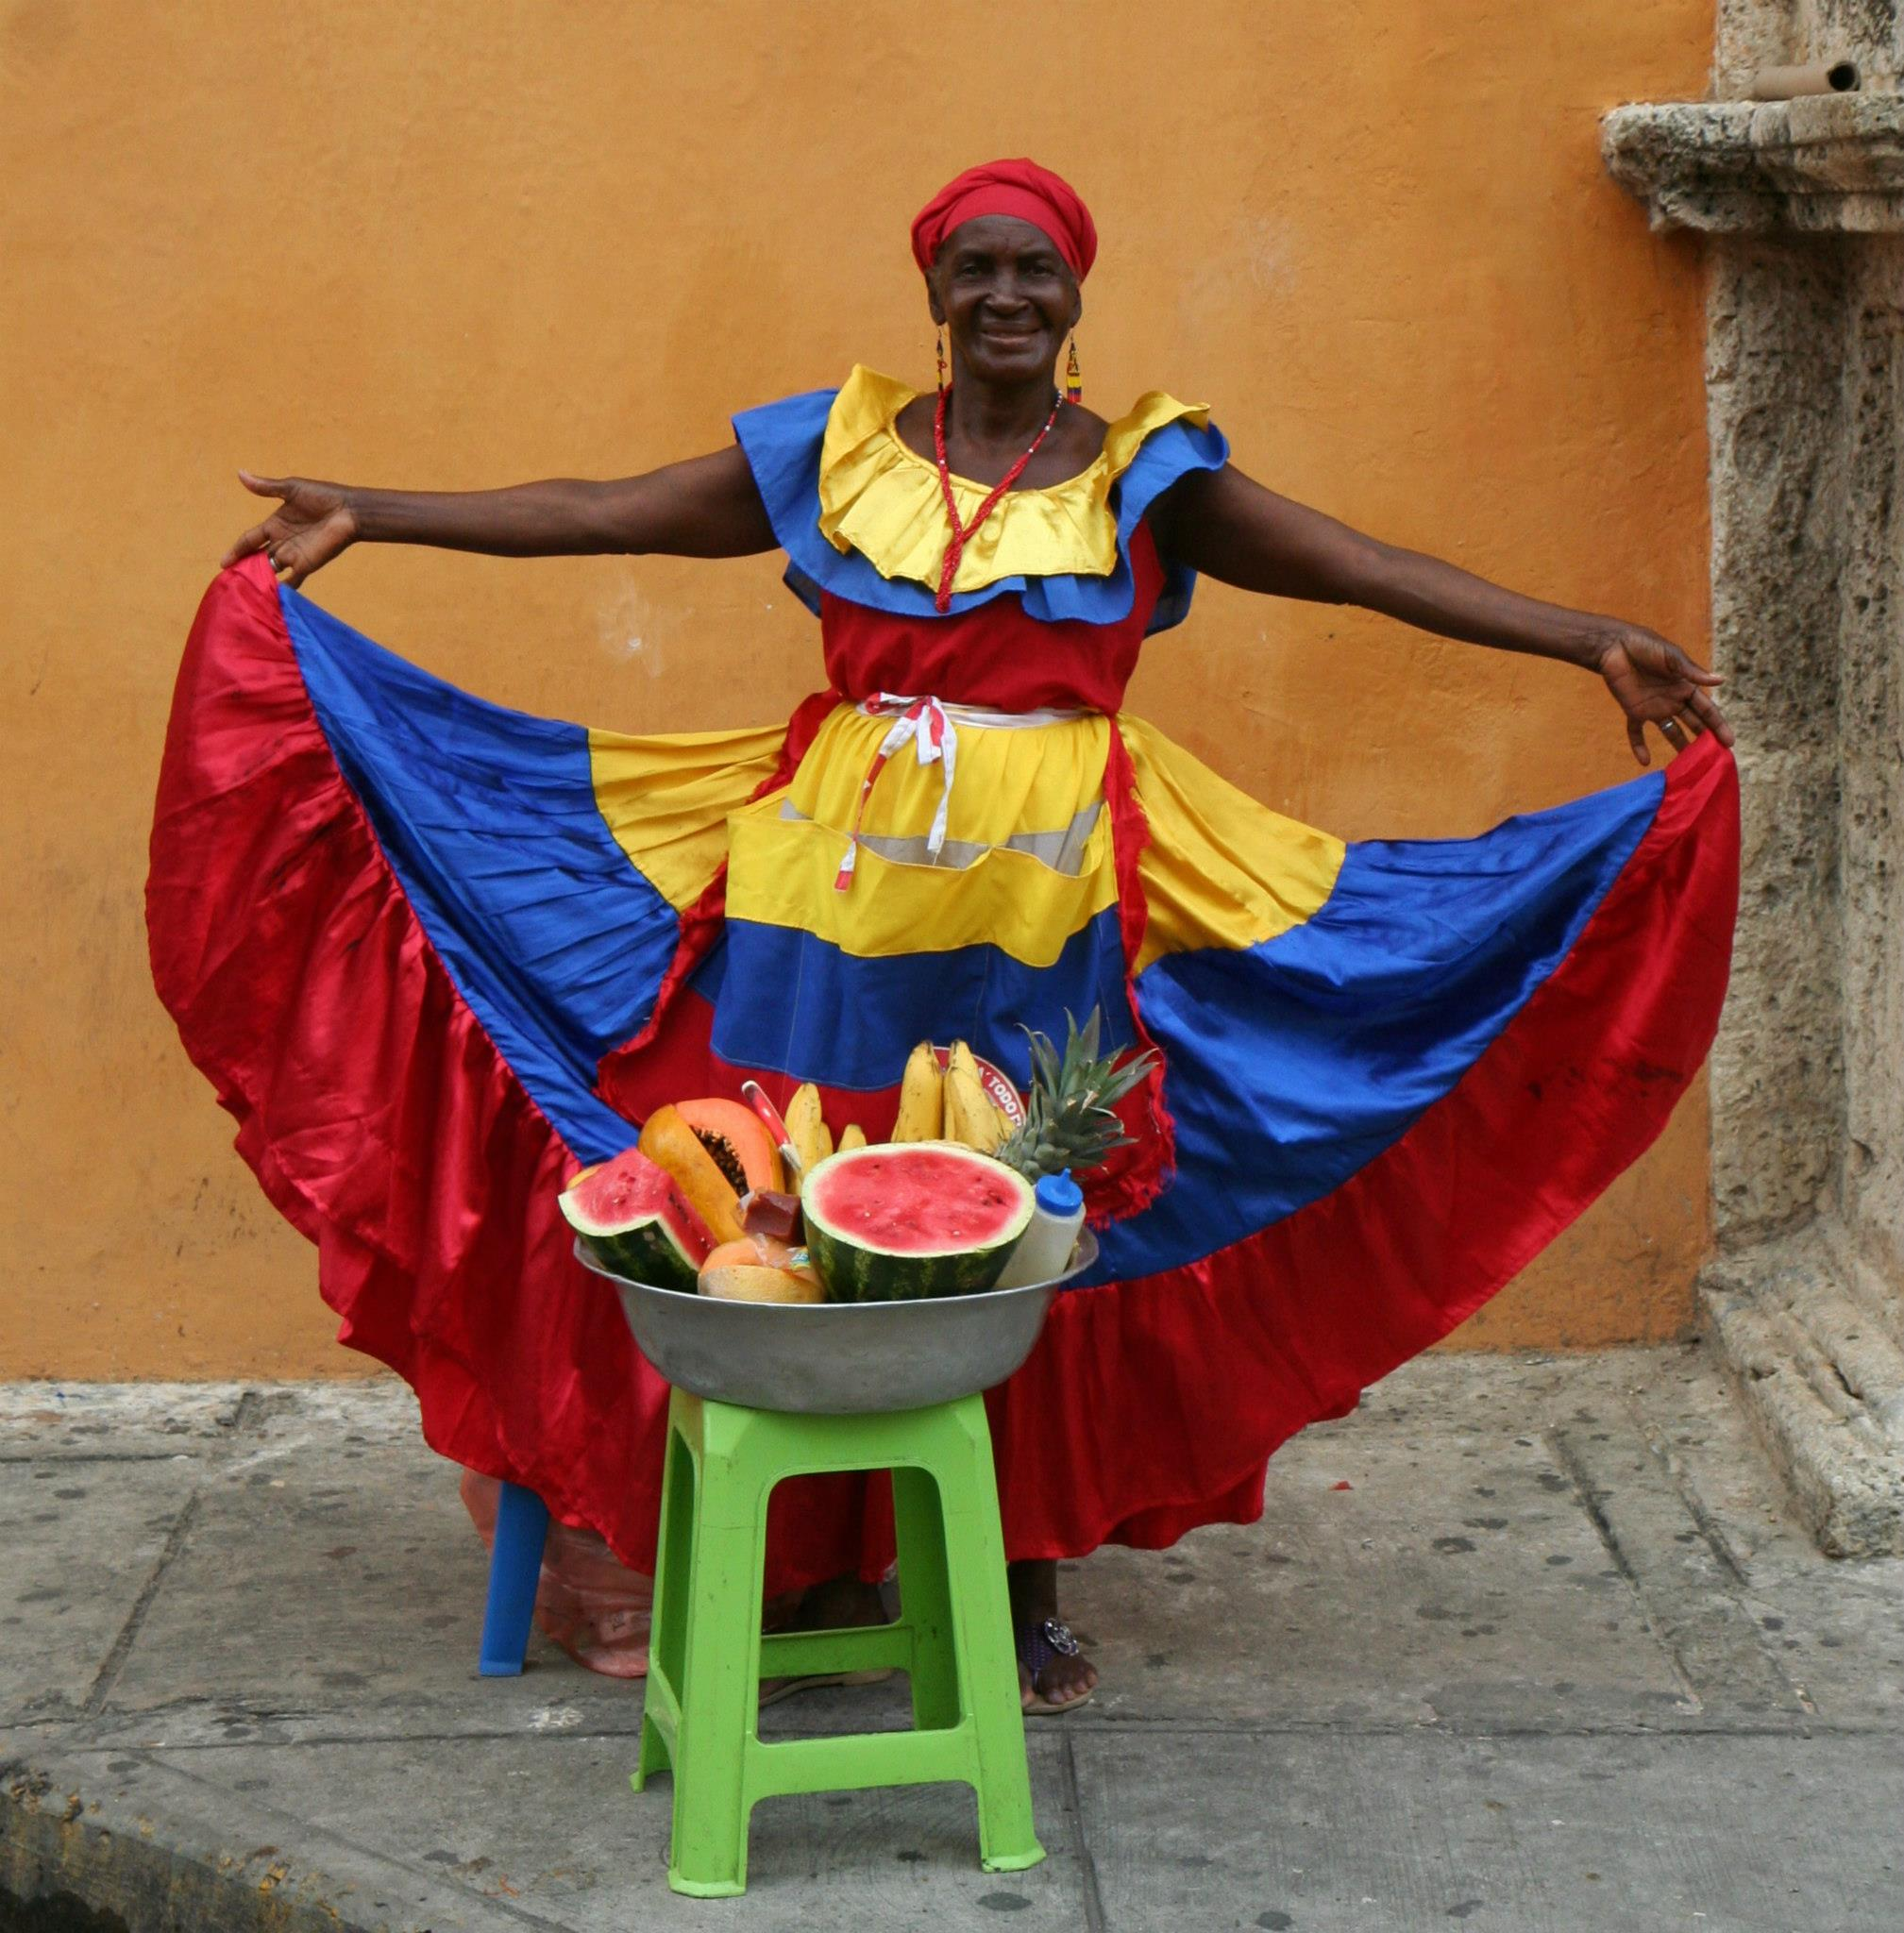 Fruitverkoopster op Plaza de Santo Domingo in Cartagena